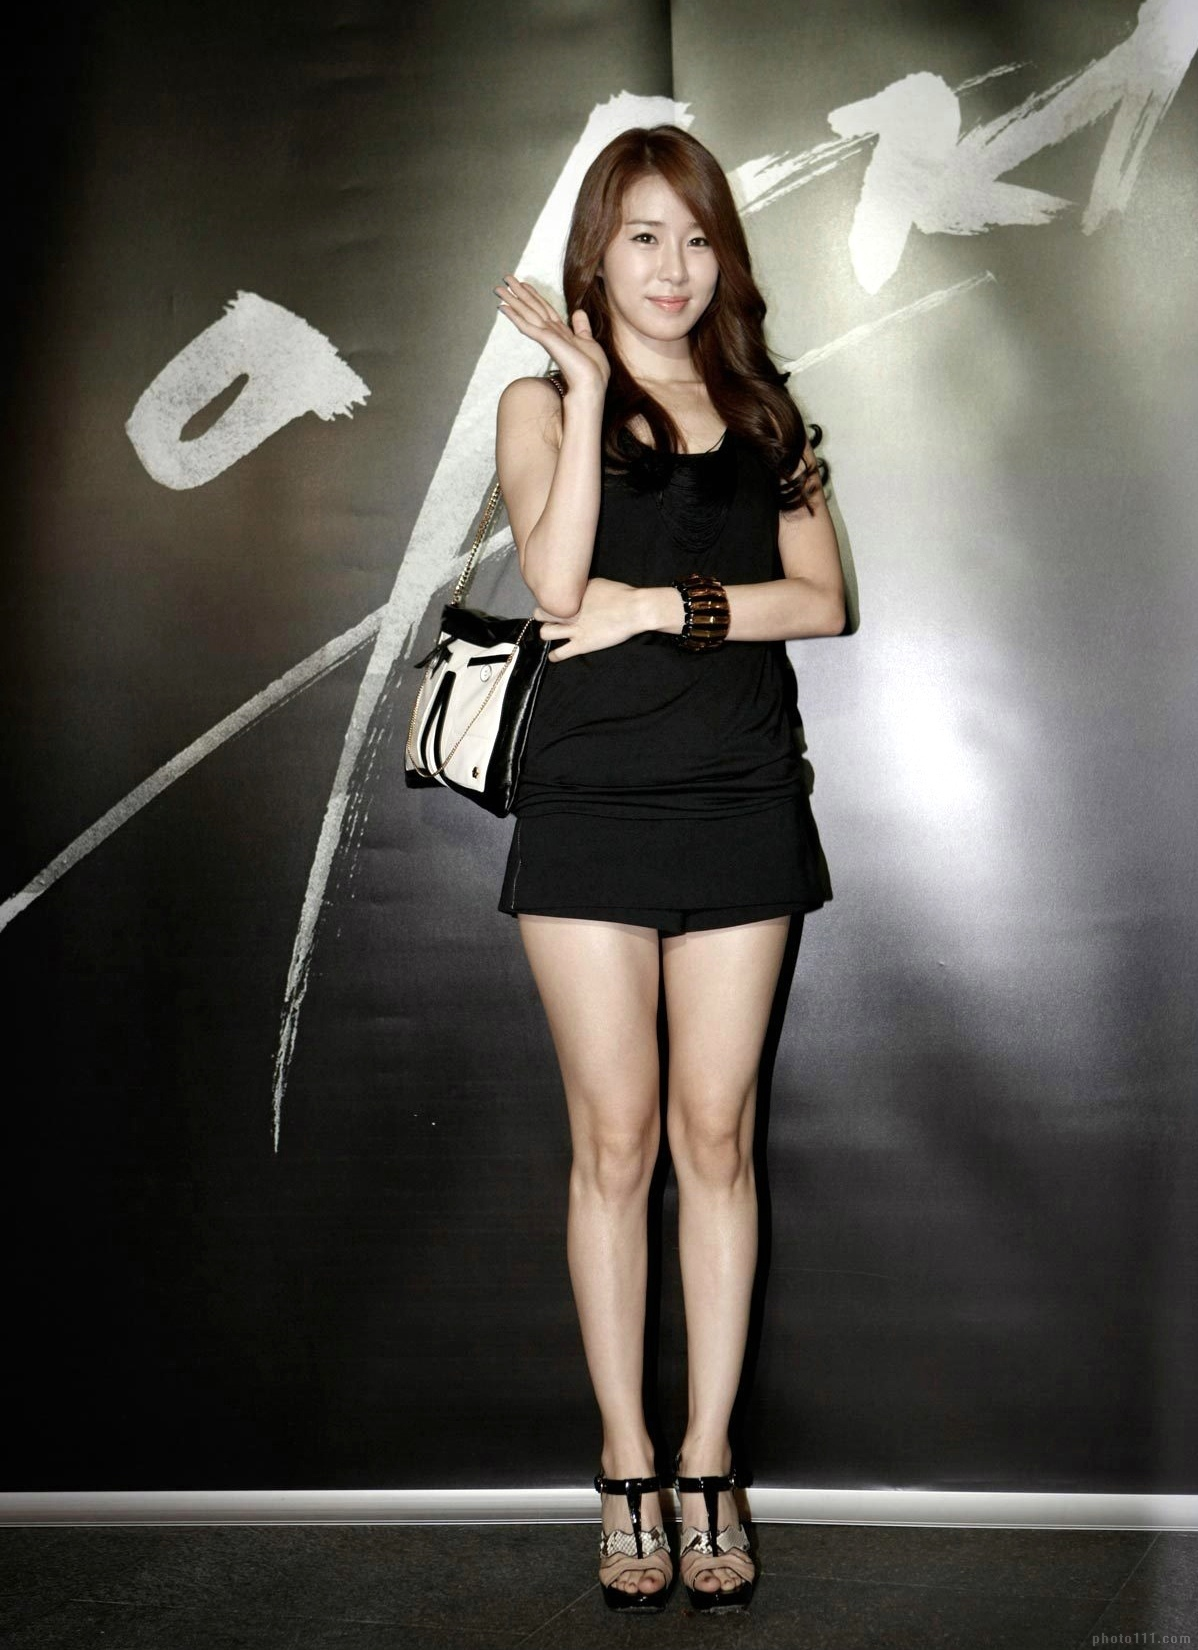 Image Result For South Korea Girl Sexy Hot